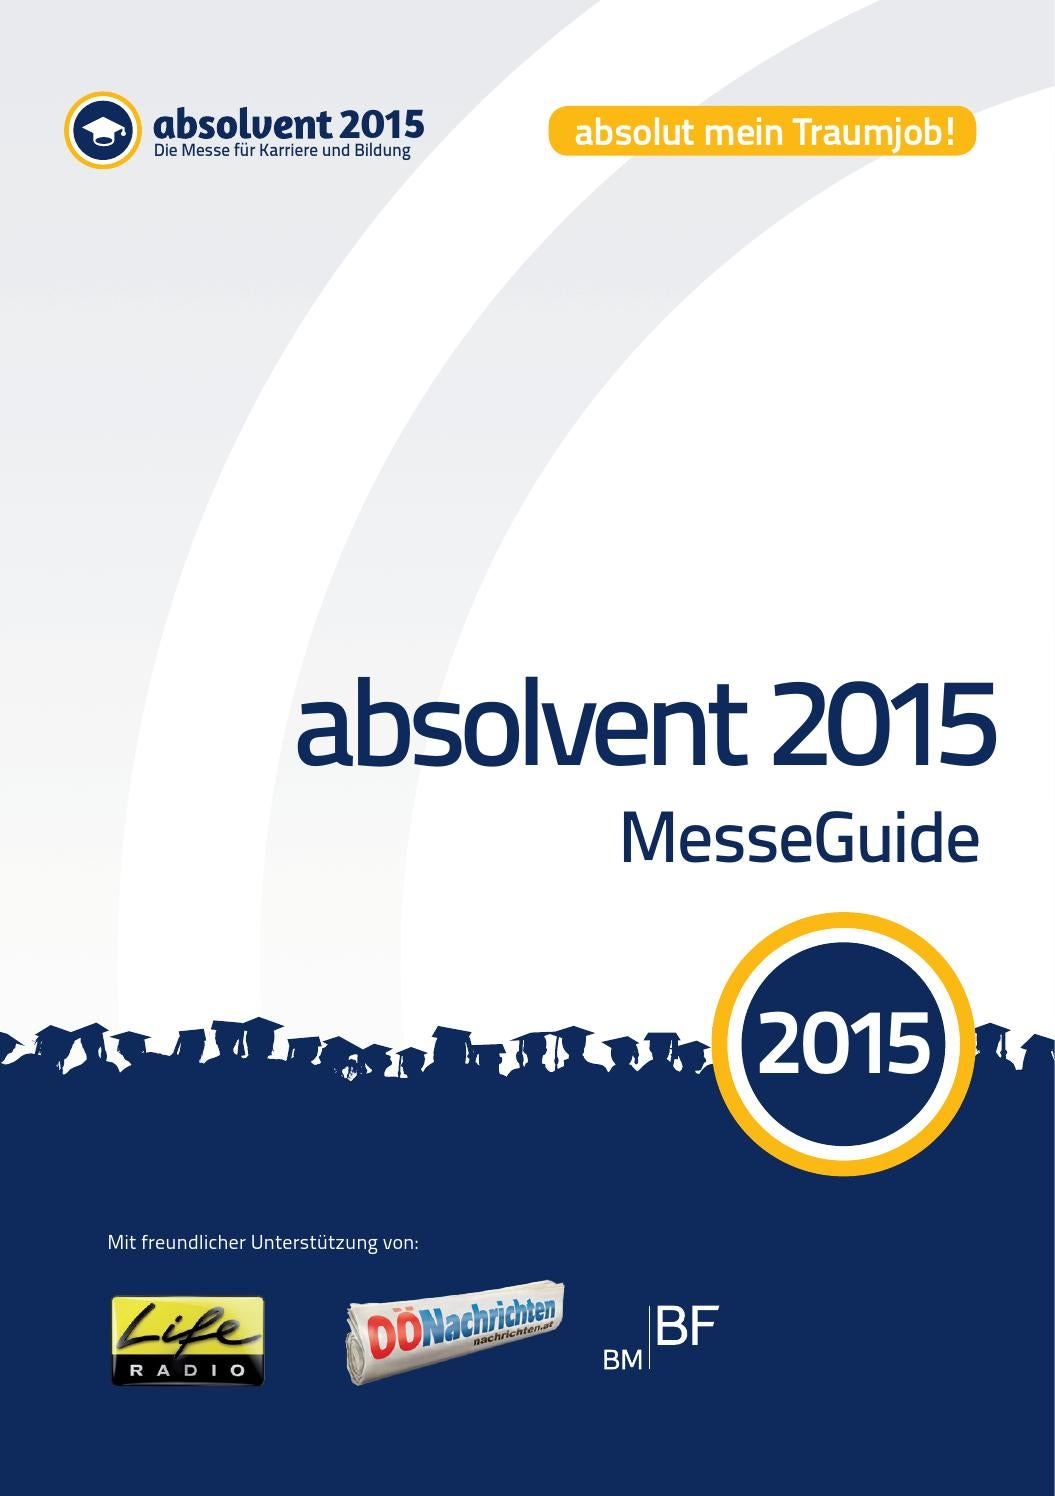 absolvent 2015 MesseGuide by Business Cluster Network GmbH - issuu